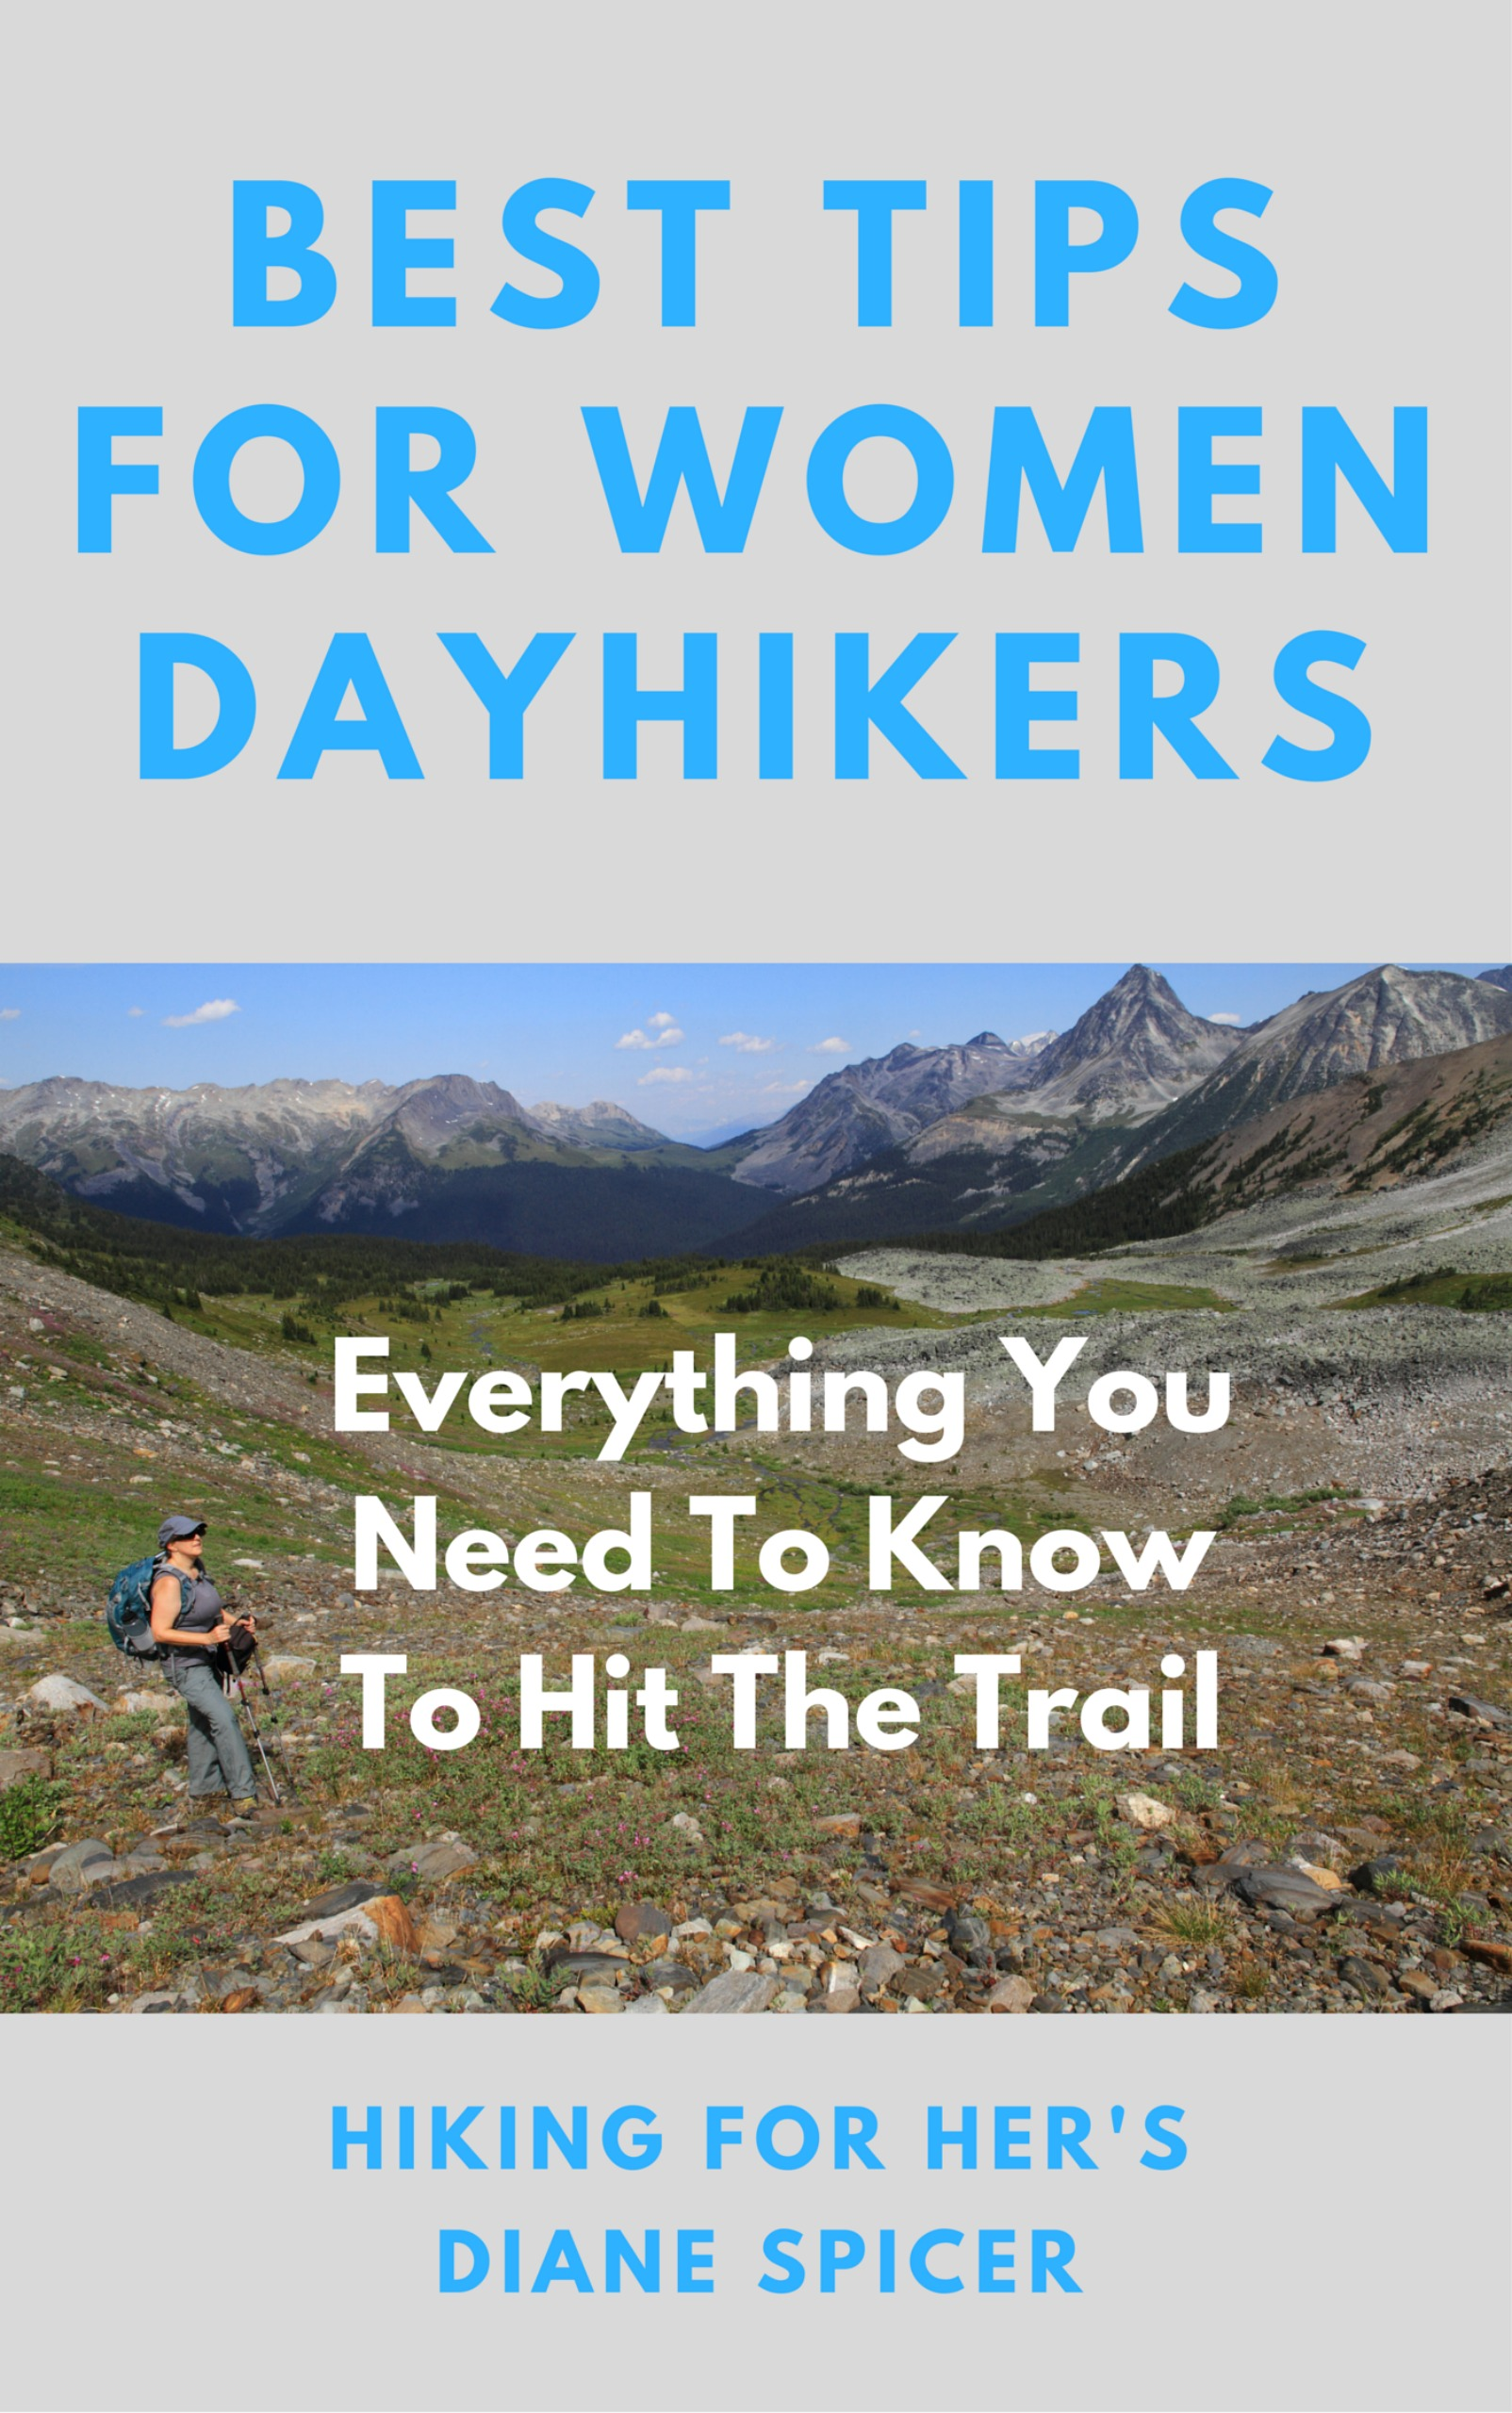 Hikers love the best tips, and you can find everything you need to know to hit the trail all in one place. Check it out! #hiking #womenhiking #dayhikes #hikingtips #hikingbook #femalehikers